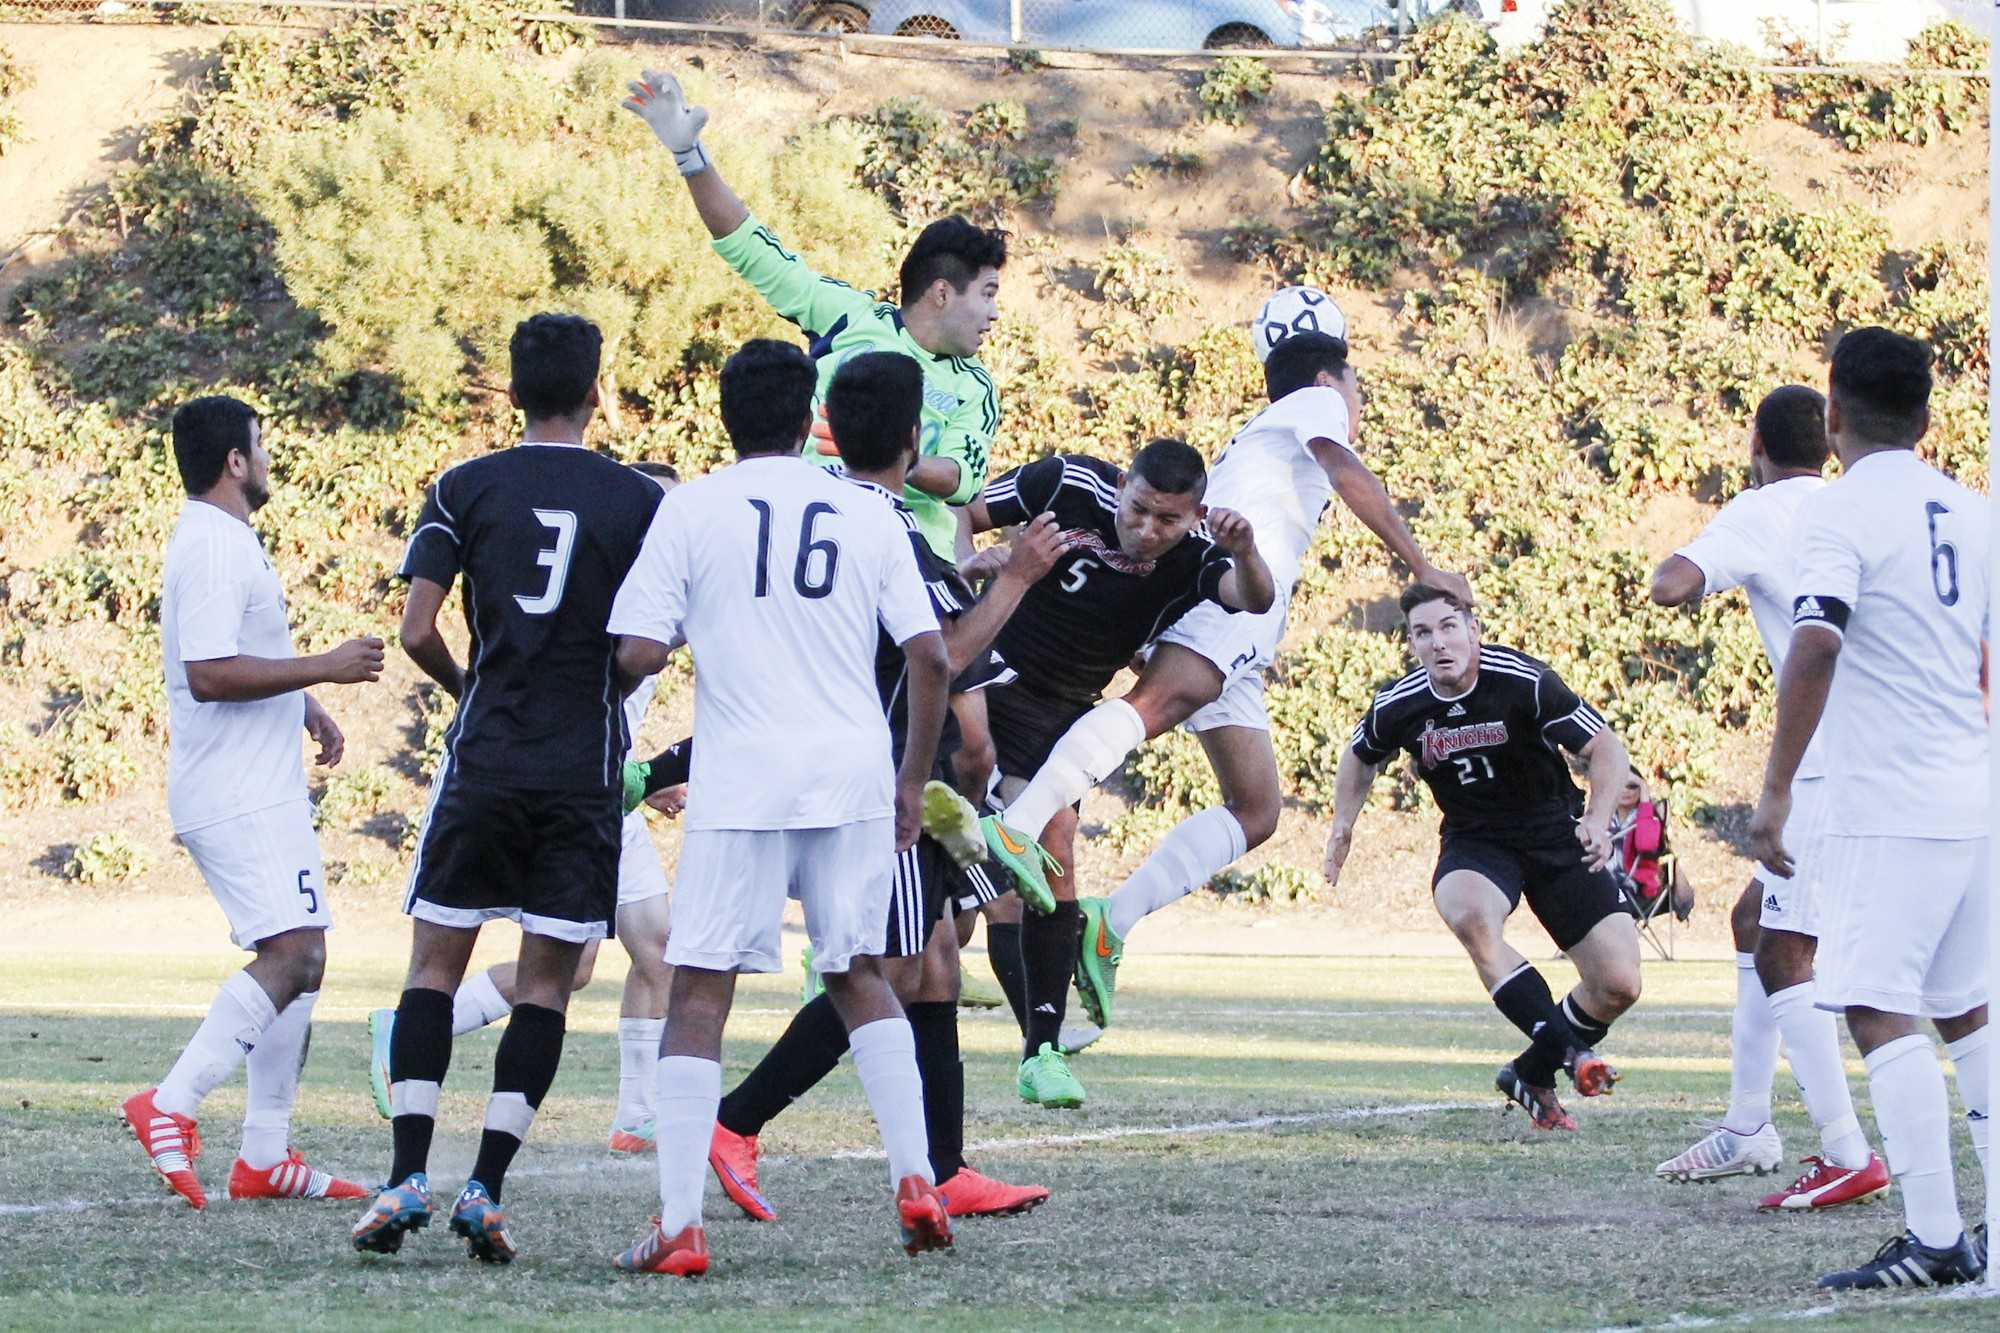 The Knights faced the Cuyamaca Coyotes in their last game of the season, losing 4-2 at home, on Nov. 13. They ended the season placing third in the Pacific Coast Athletic Conference. Both teams played each other again in the first round of the SoCal Regional playoffs on Nov. 21 at Cuyamaca College, where the Coyotes defeated the Knights yet again, 2-1, moving into the second round of the playoffs. Photo credit: Celia Jimenez